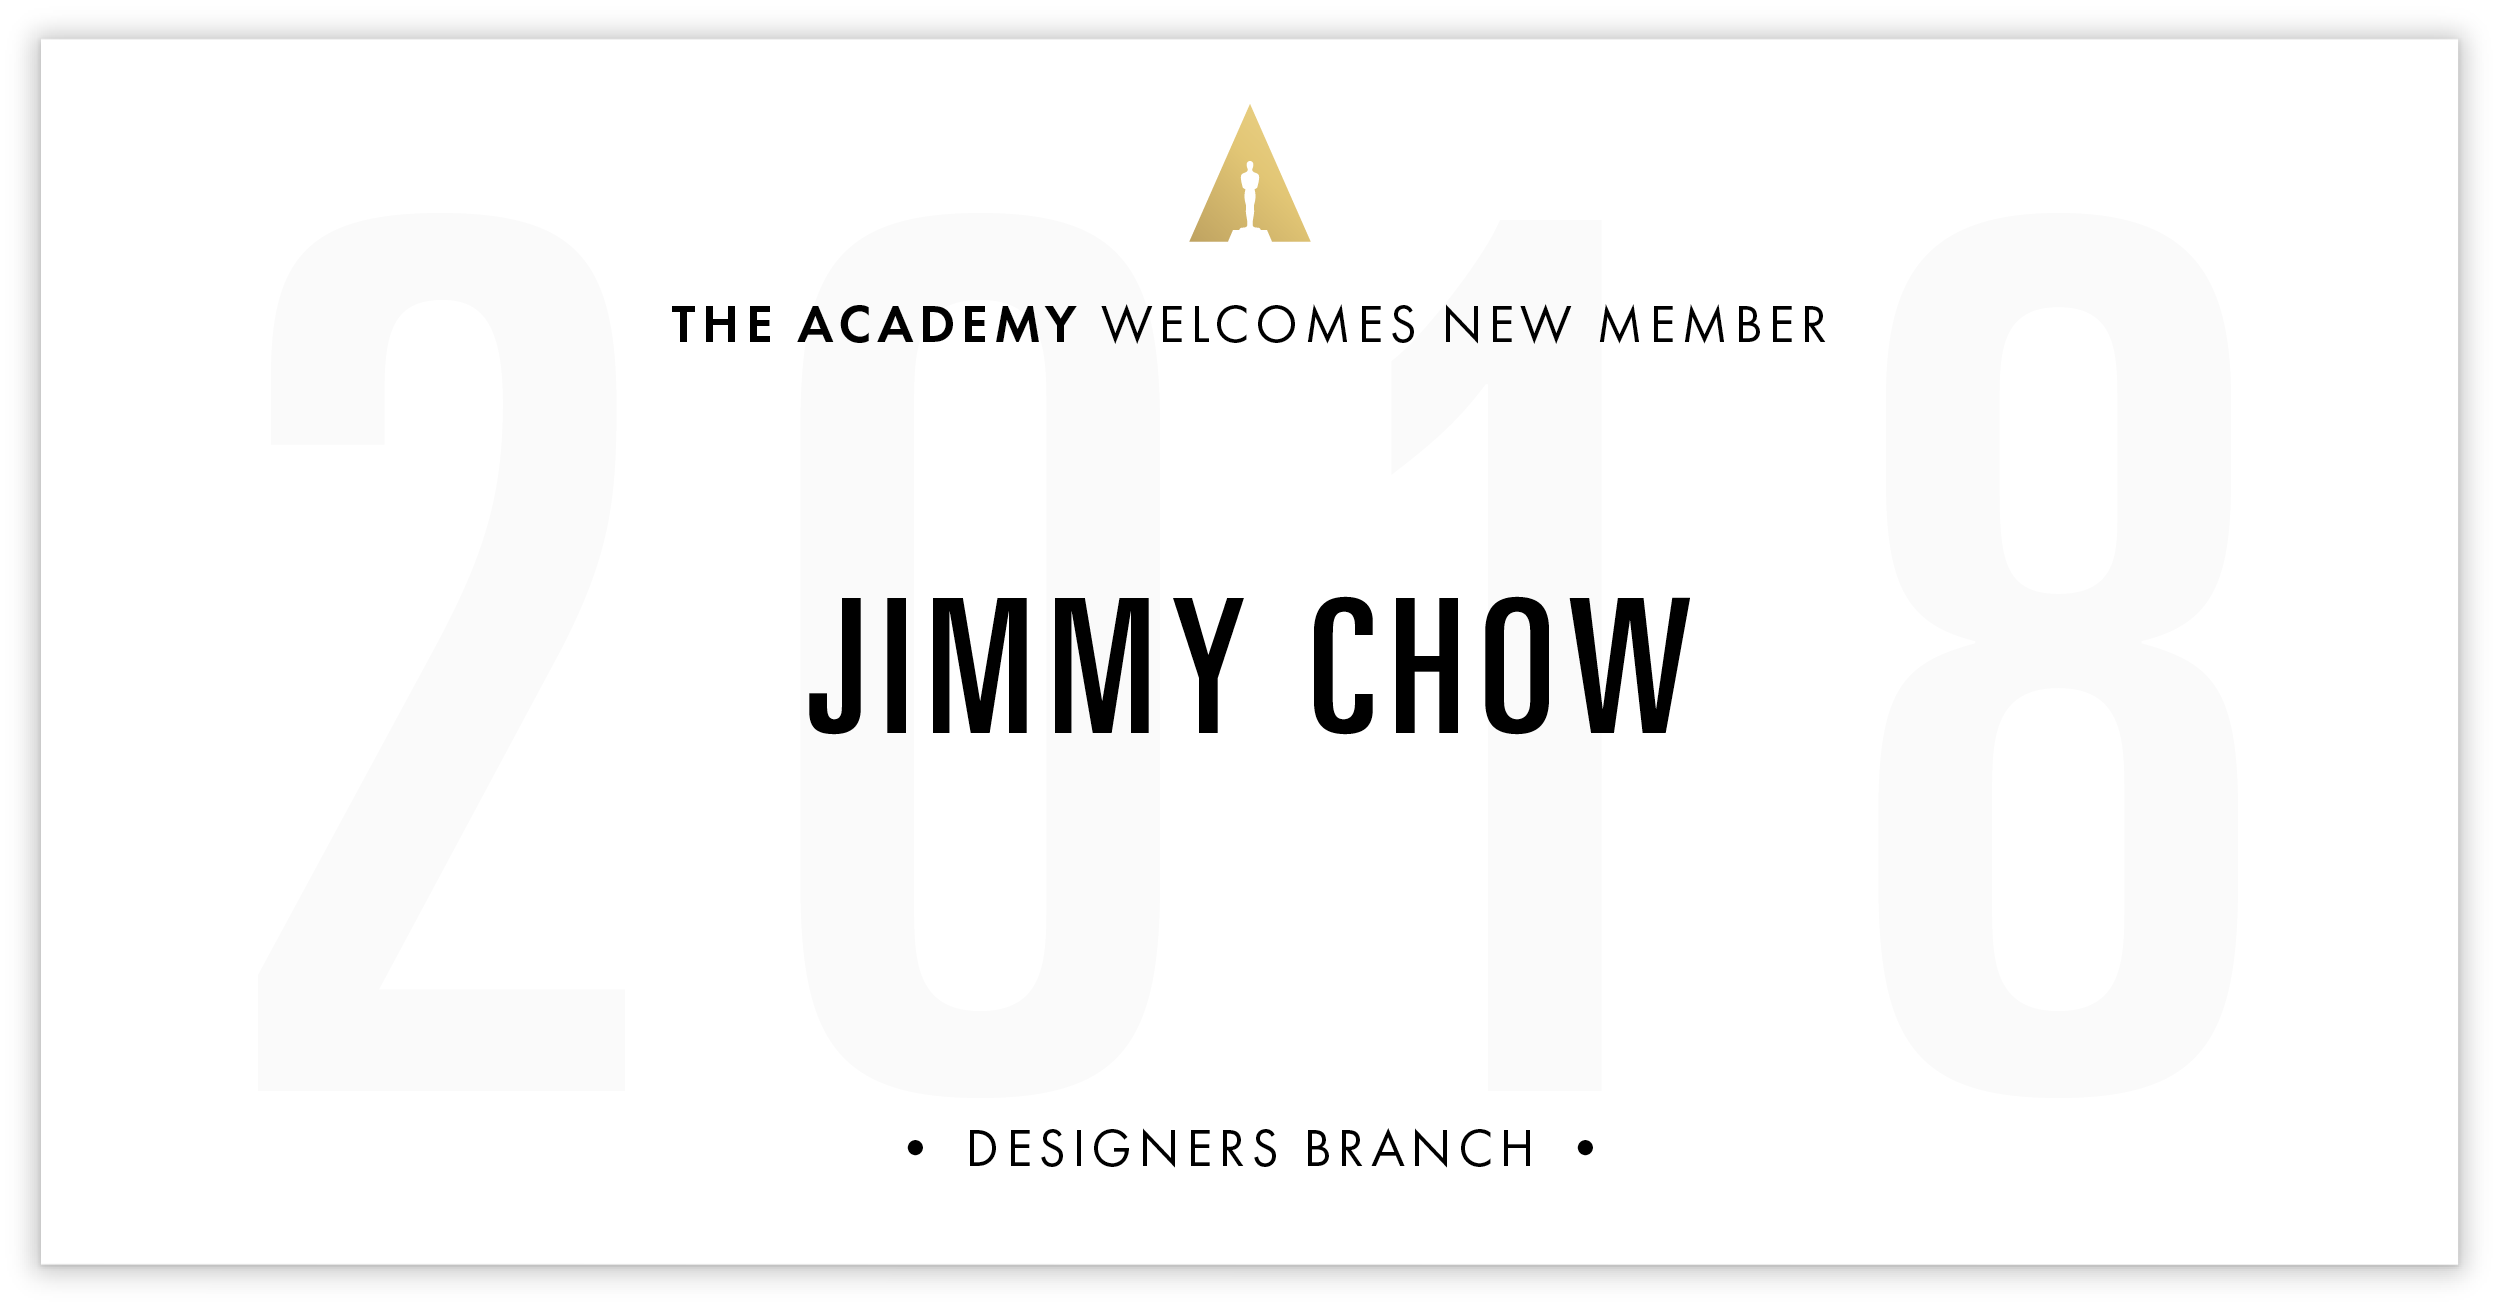 Jimmy Chow is invited!